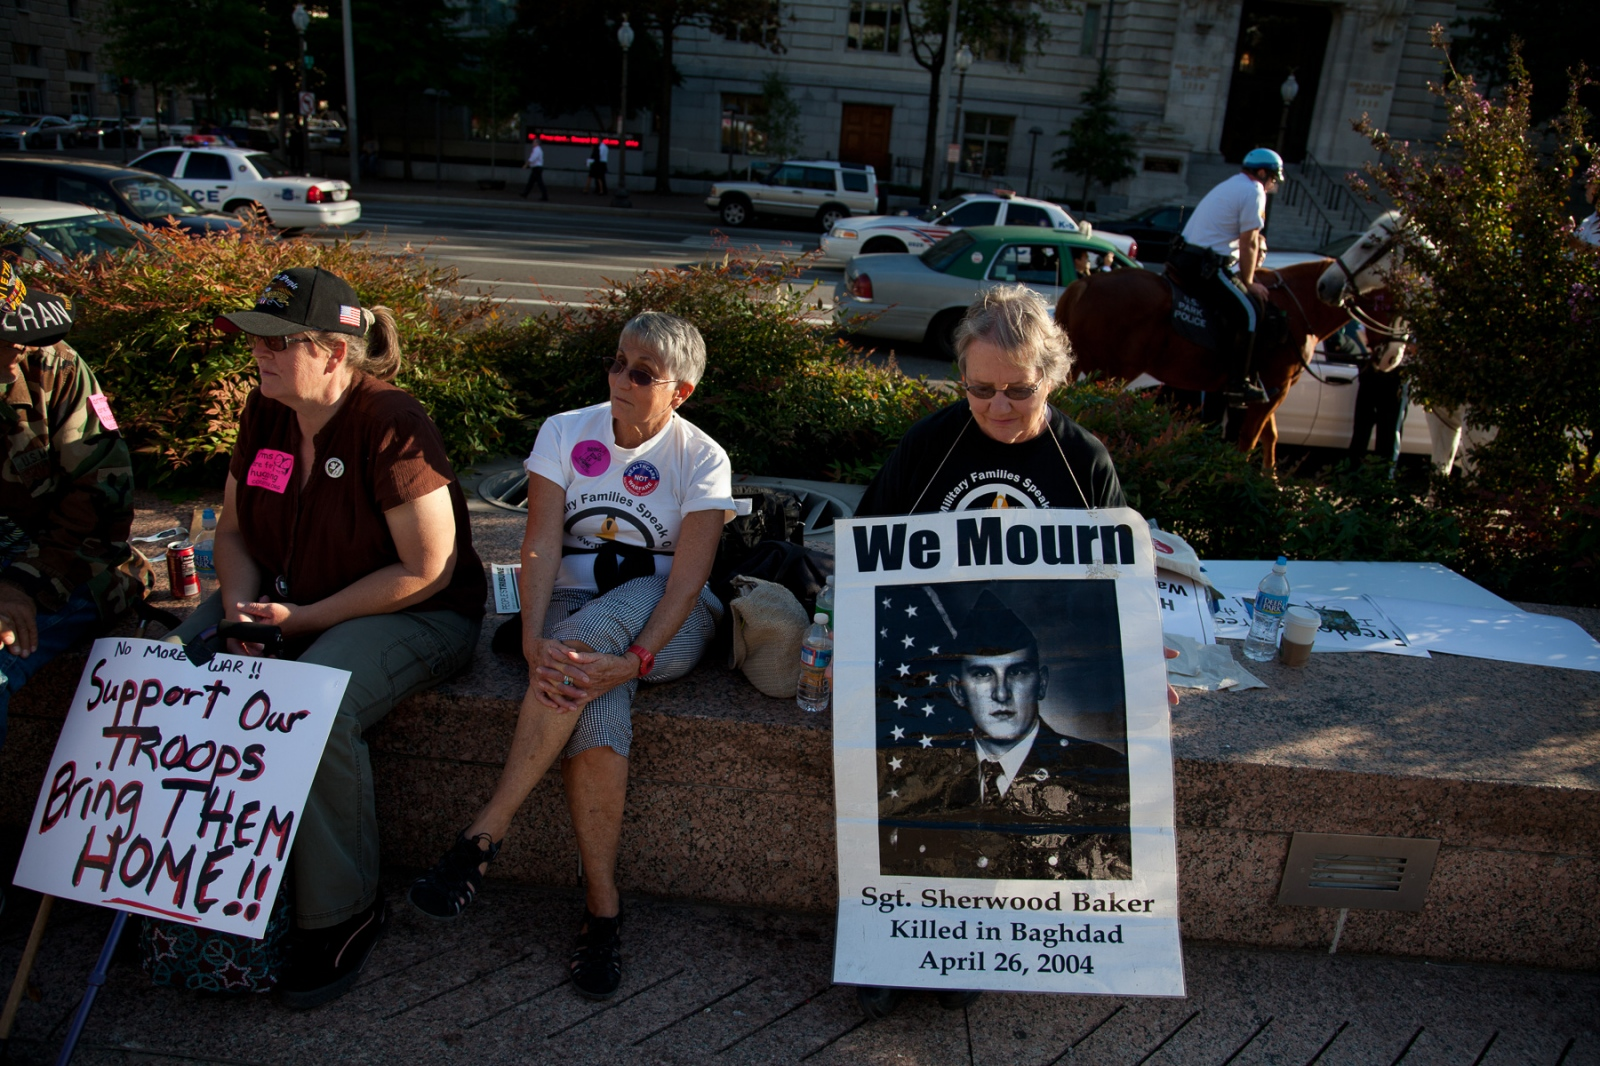 """Celeste Zappala and members of """"Military Families Speak Out"""" quietly sat on one side of the square. Her son, who was the first Pennsylvanian guardsman to be killed since World War II, died in 2004 as his unit searched for non-existent weapons of mass destruction in Iraq: """"We decided when we buried him that we would keep speaking out. That's what I'm doing here."""""""